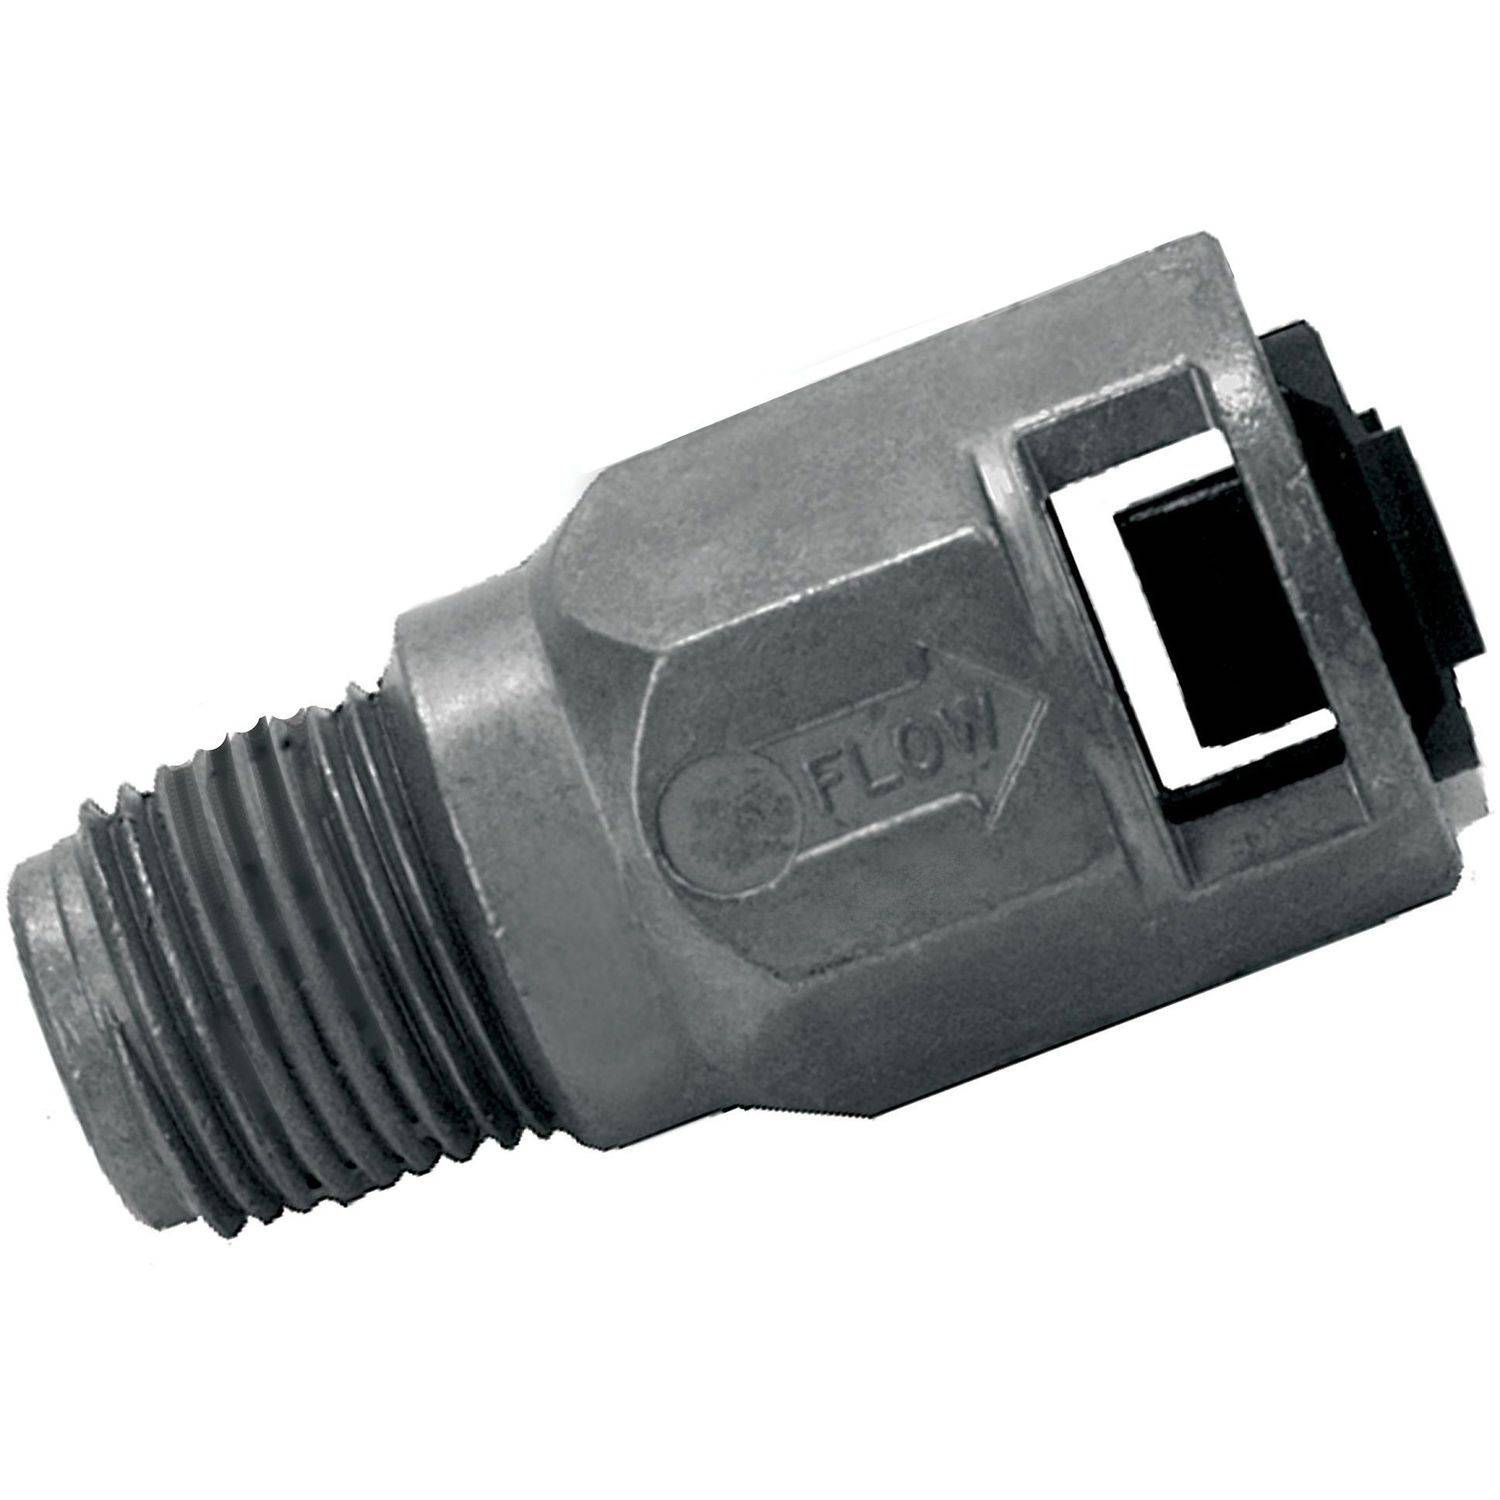 Image of ACDelco 15-30900 Fitting Heater HS